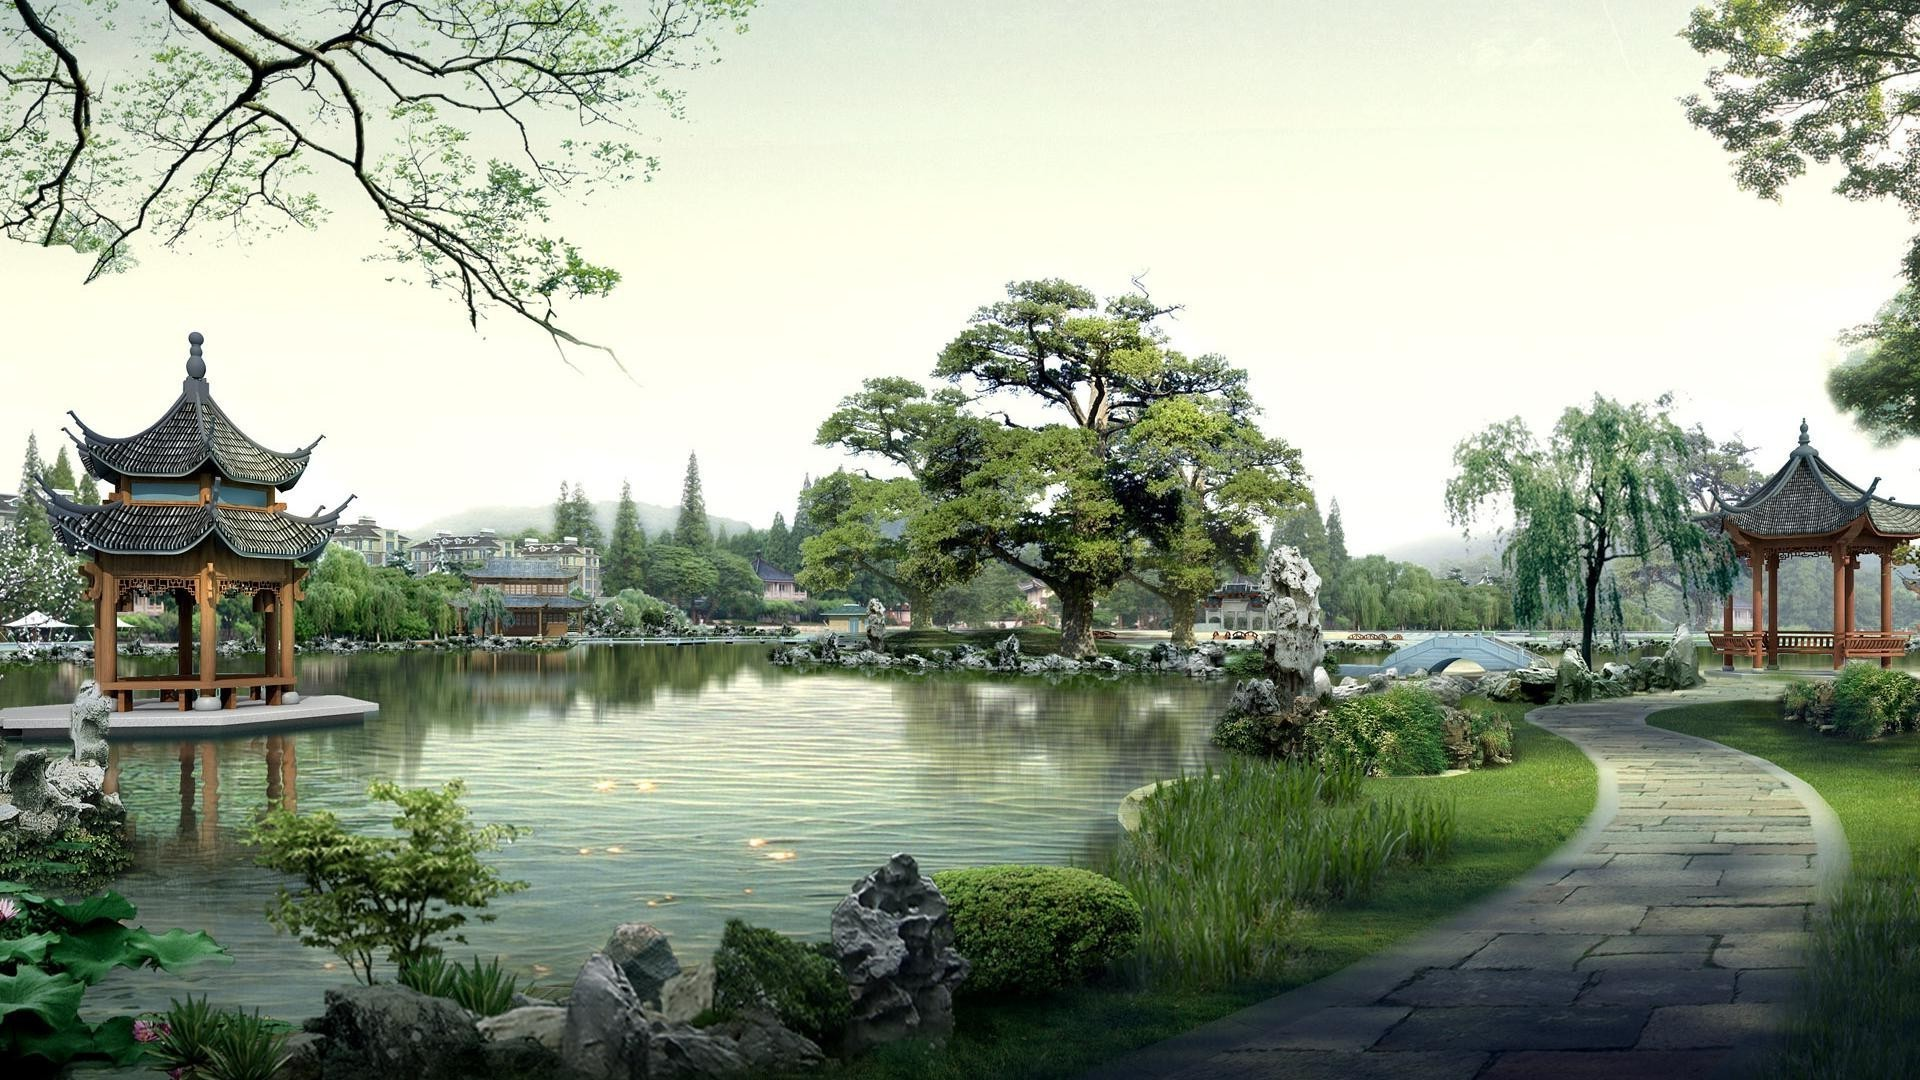 parks tree garden park pool water lake travel architecture building reflection river nature outdoors house marquee bridge culture landscape home